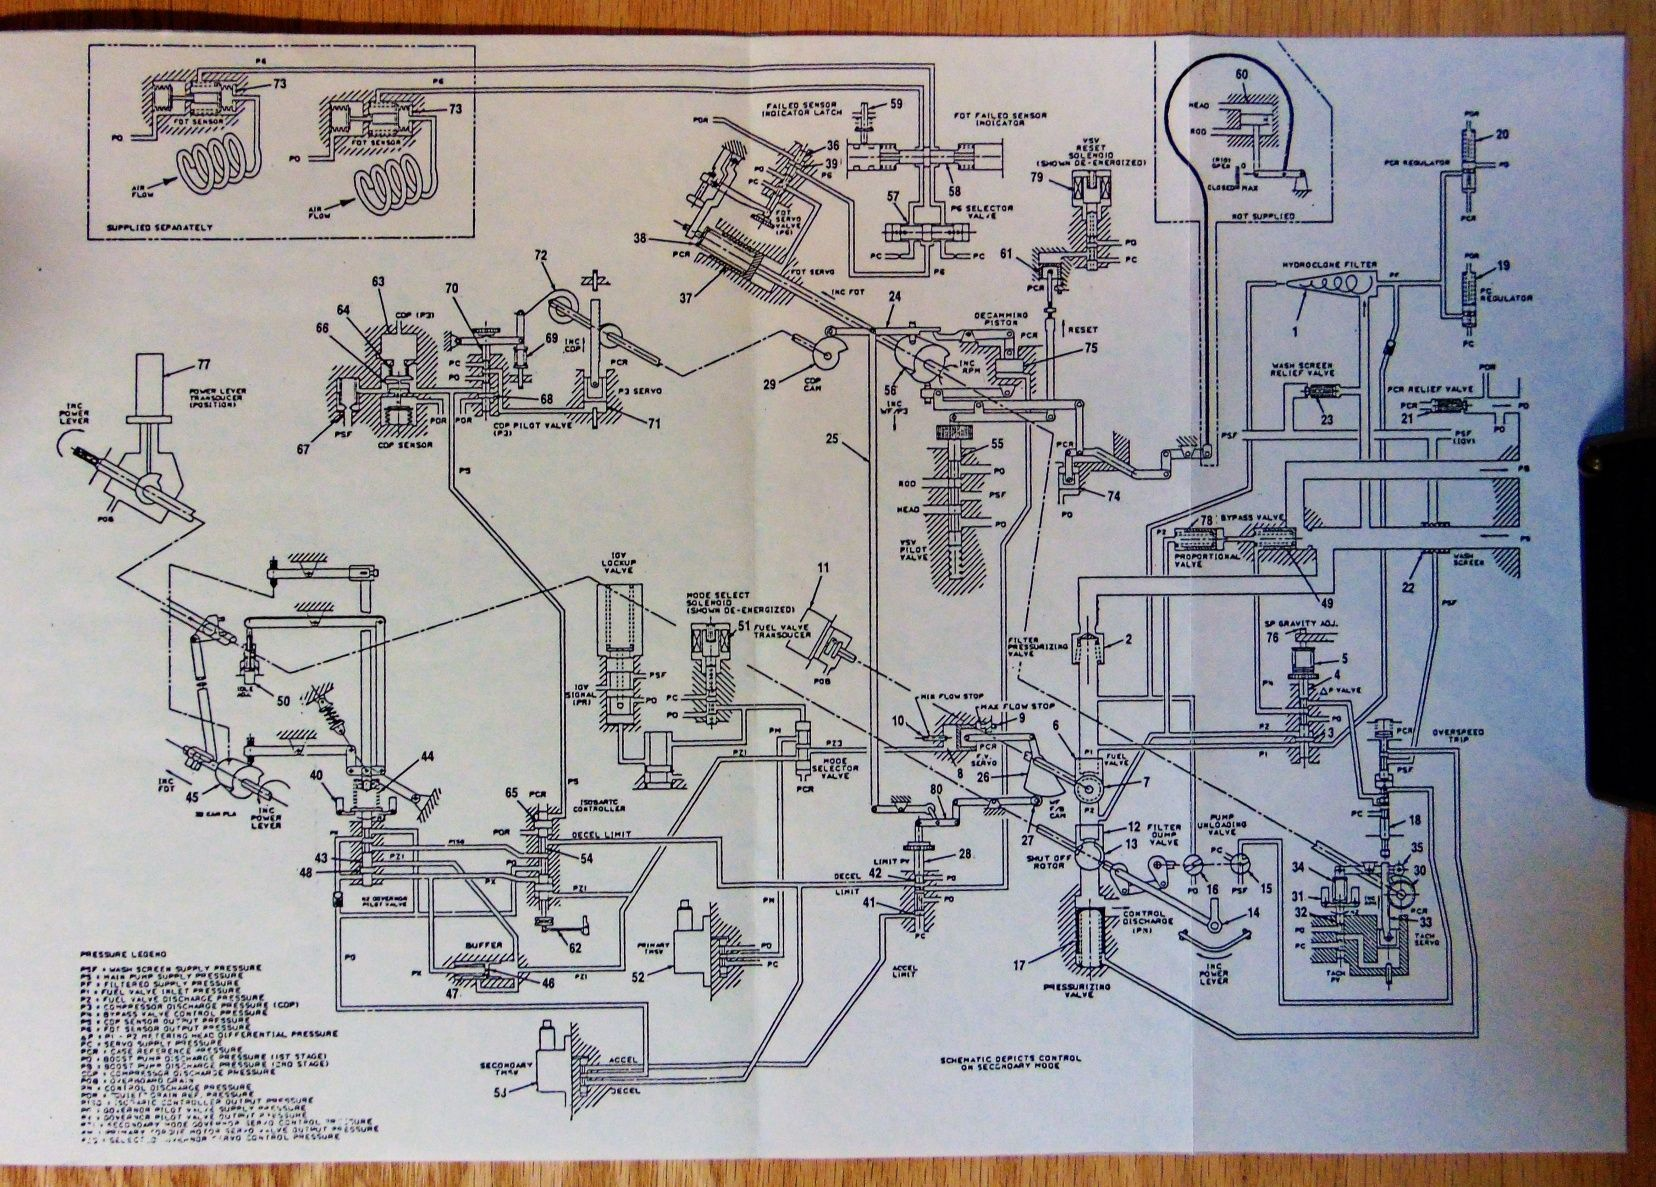 a7c95f80808e00ea83d619979c1d3921 woodward main engine fuel control schematic for the ge f110 jet jet v force plus wiring diagram at crackthecode.co